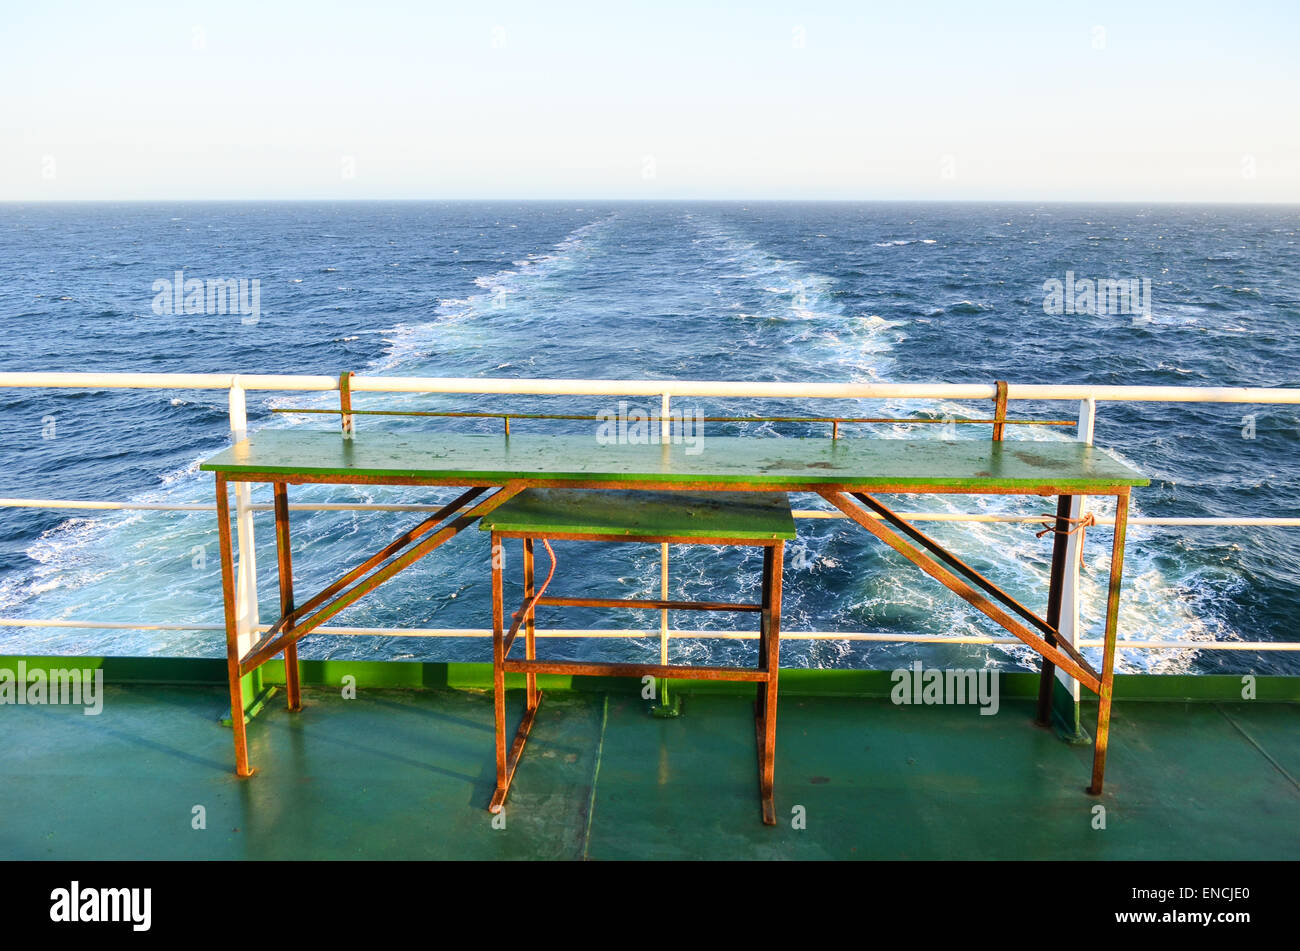 Freighter travel: empty table and trace of cargo ship in the open sea of the Atlantic ocean - Stock Image